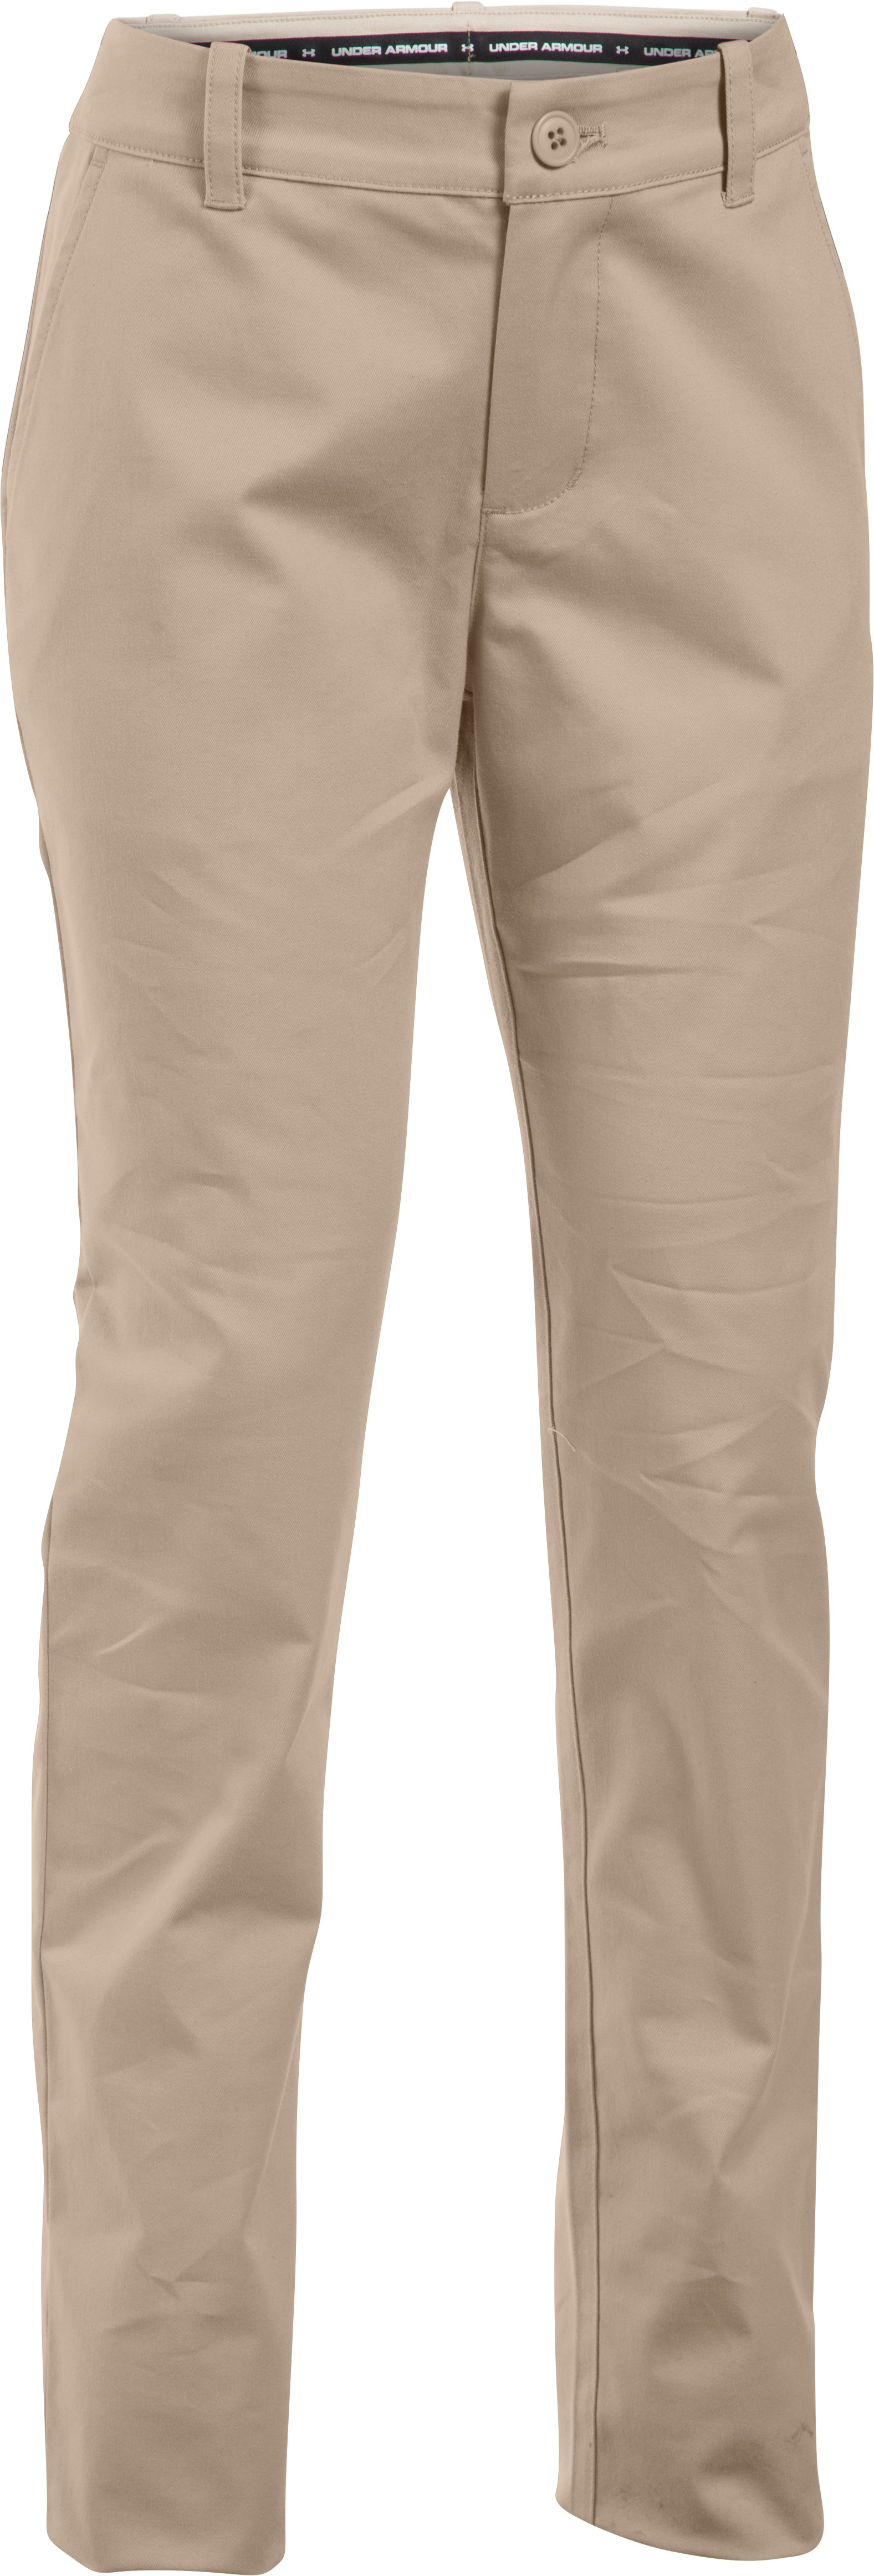 Girls' UA Uniform Chino Pants, Desert Sand,